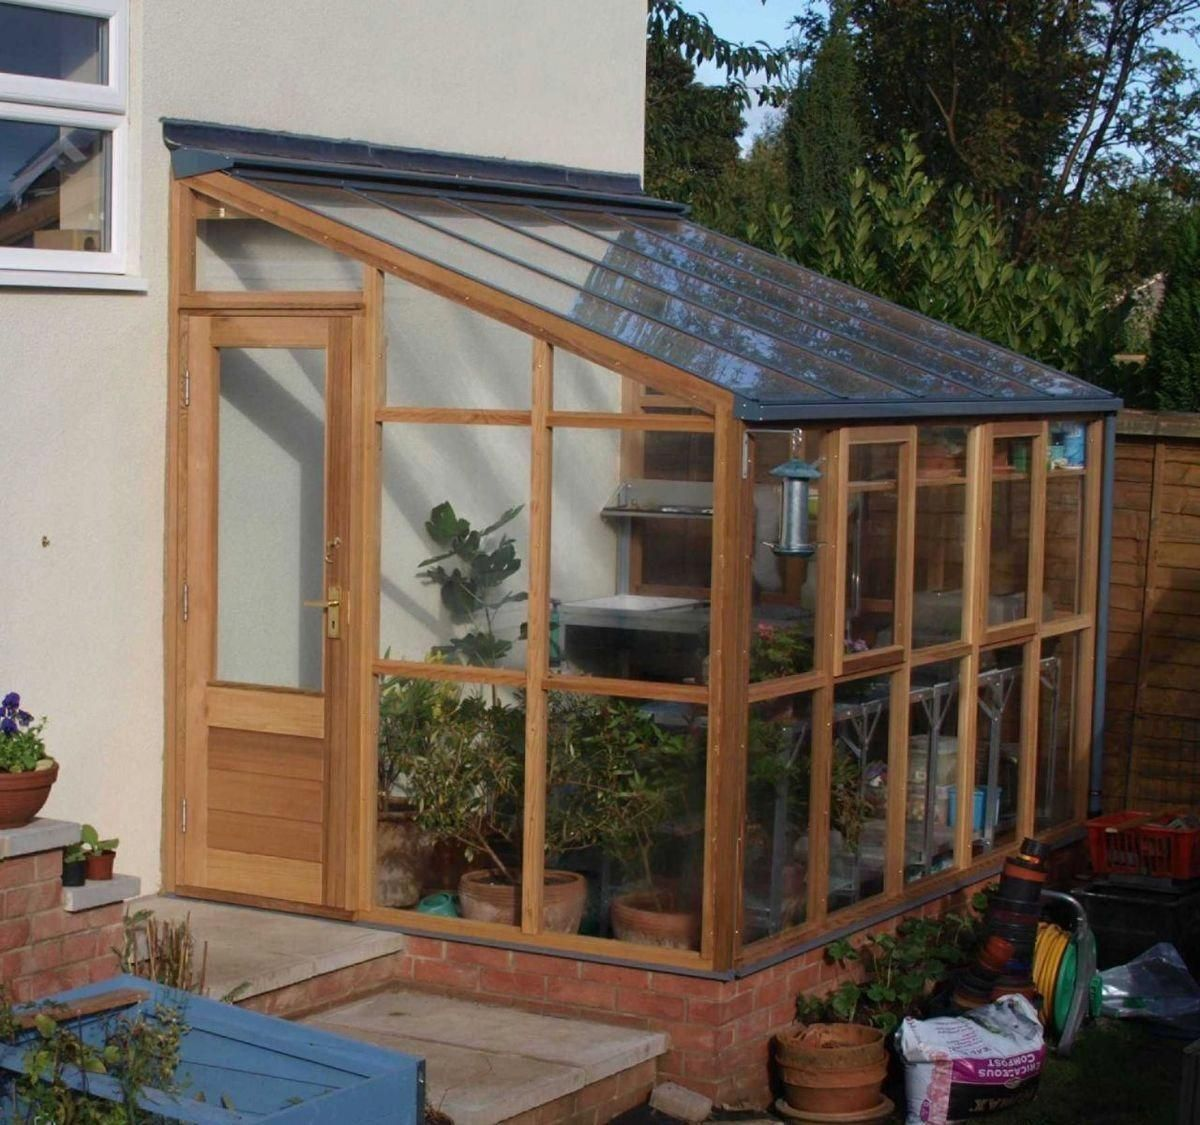 Diy Lean To Greenhouse Kits On How To Build A Solarium Yourself